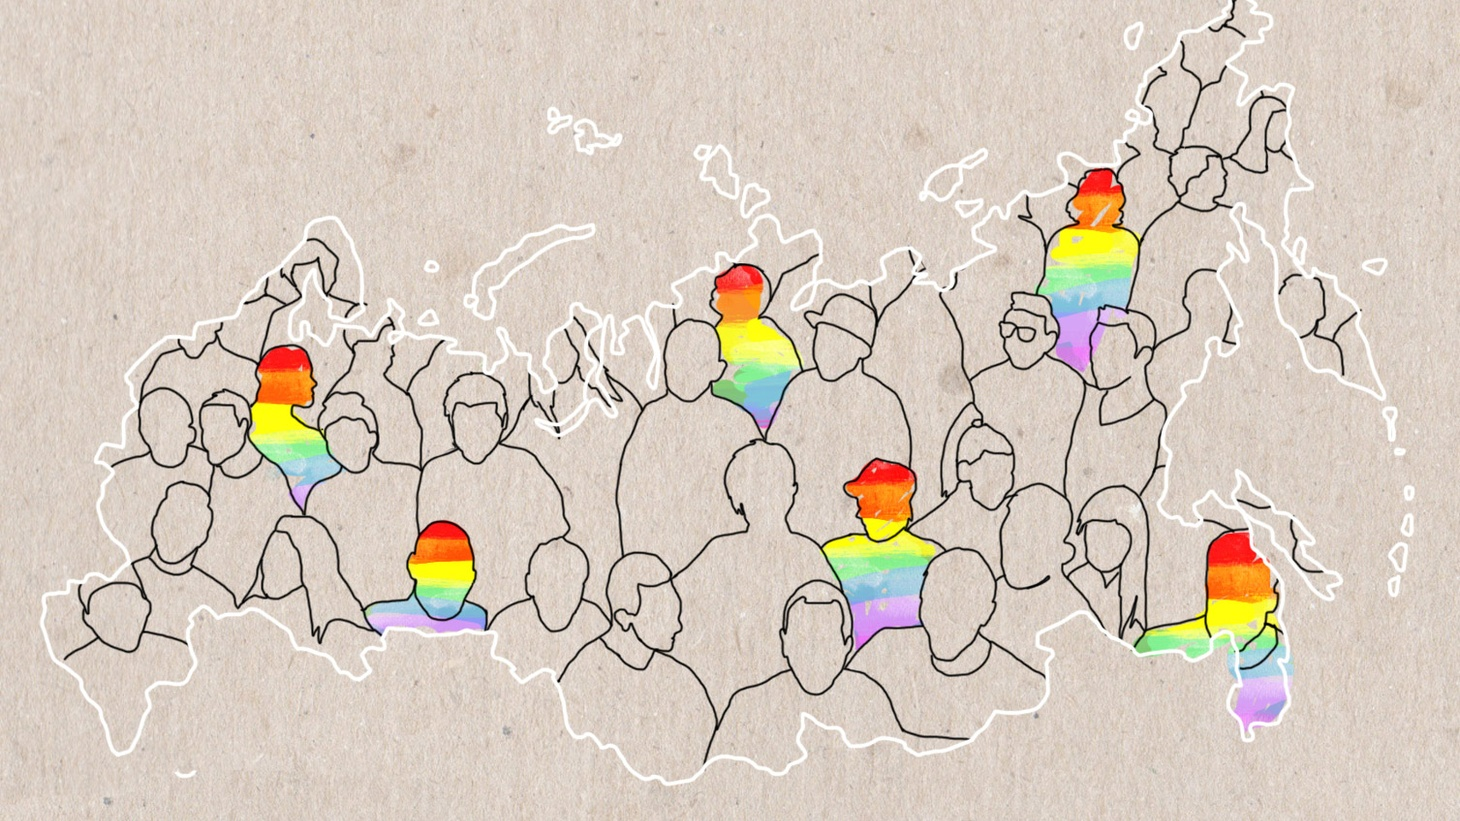 In light of recent reports about Chechnya's anti-gay kidnappings, torture and killings, we revisit stories that expose what it's like to be gay in Russia. Reveal traces the roots of the anti-gay movement and shows how President Vladimir Putin uses this agenda to quash political dissent, exert influence on neighboring nations and bash the West.